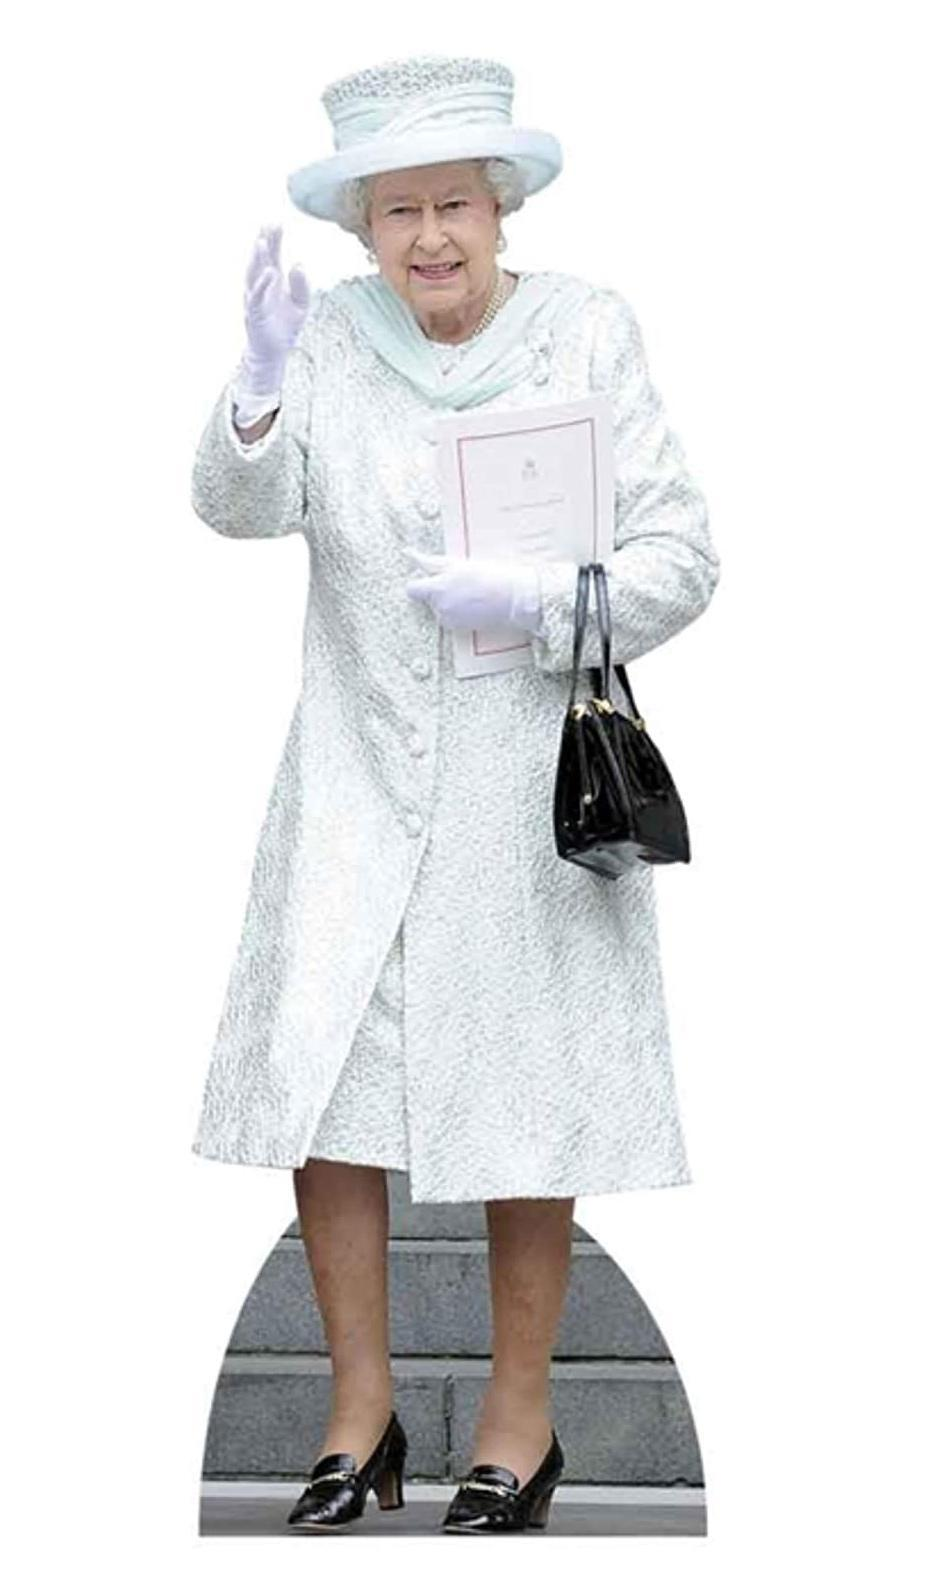 """<p>The ultimate party guest is here! Not only will any mom get a laugh at this Queen cut-out, but who better to keep a busy parent company?</p> <p><strong>Buy It! Queen Elizabeth Cardboard Cutout, <a href=""""https://www.amazon.com/Elizabeth-Lifesize-Standup-Cardboard-Cutouts/dp/B00JJ83PK6/"""" rel=""""sponsored noopener"""" target=""""_blank"""" data-ylk=""""slk:$55"""" class=""""link rapid-noclick-resp"""">$55</a></strong></p>"""